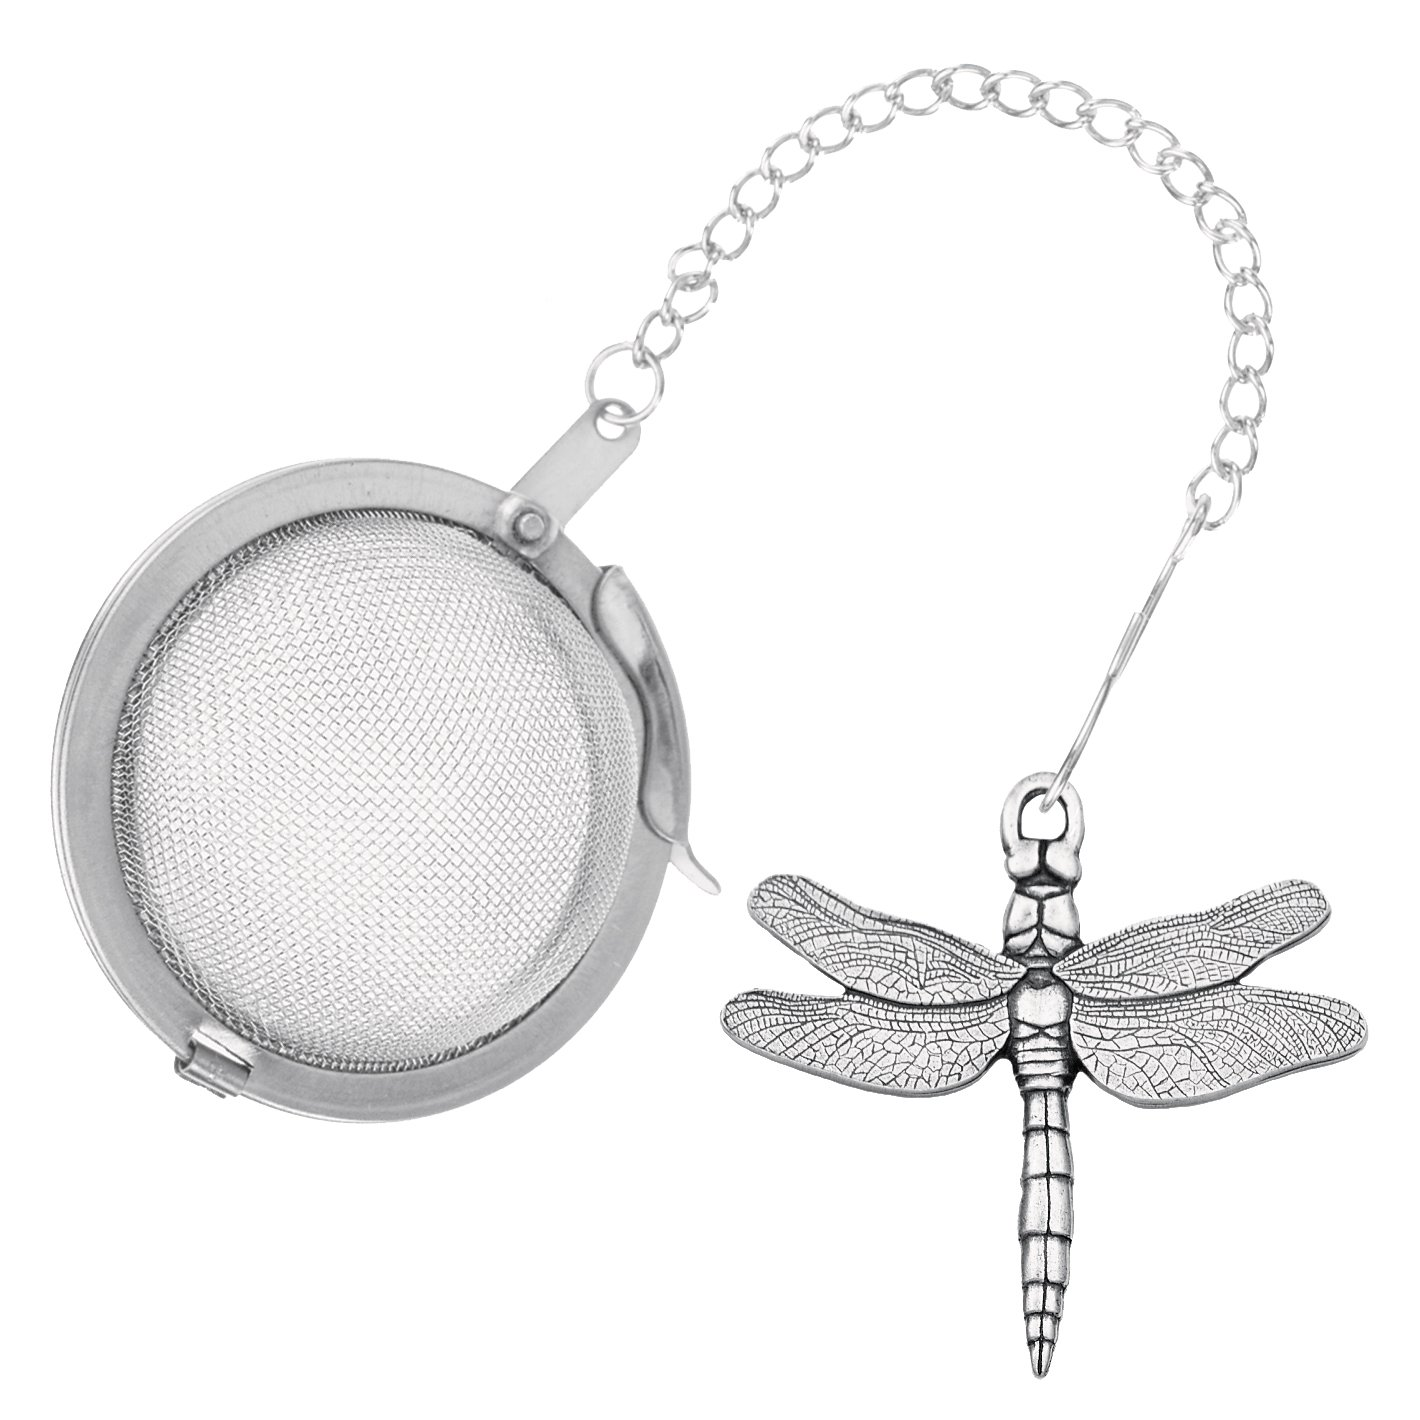 Danforth - Dragonfly Pewter Tea Infuser - Handcrafted - Gift Boxed - Made in USA by Danforth